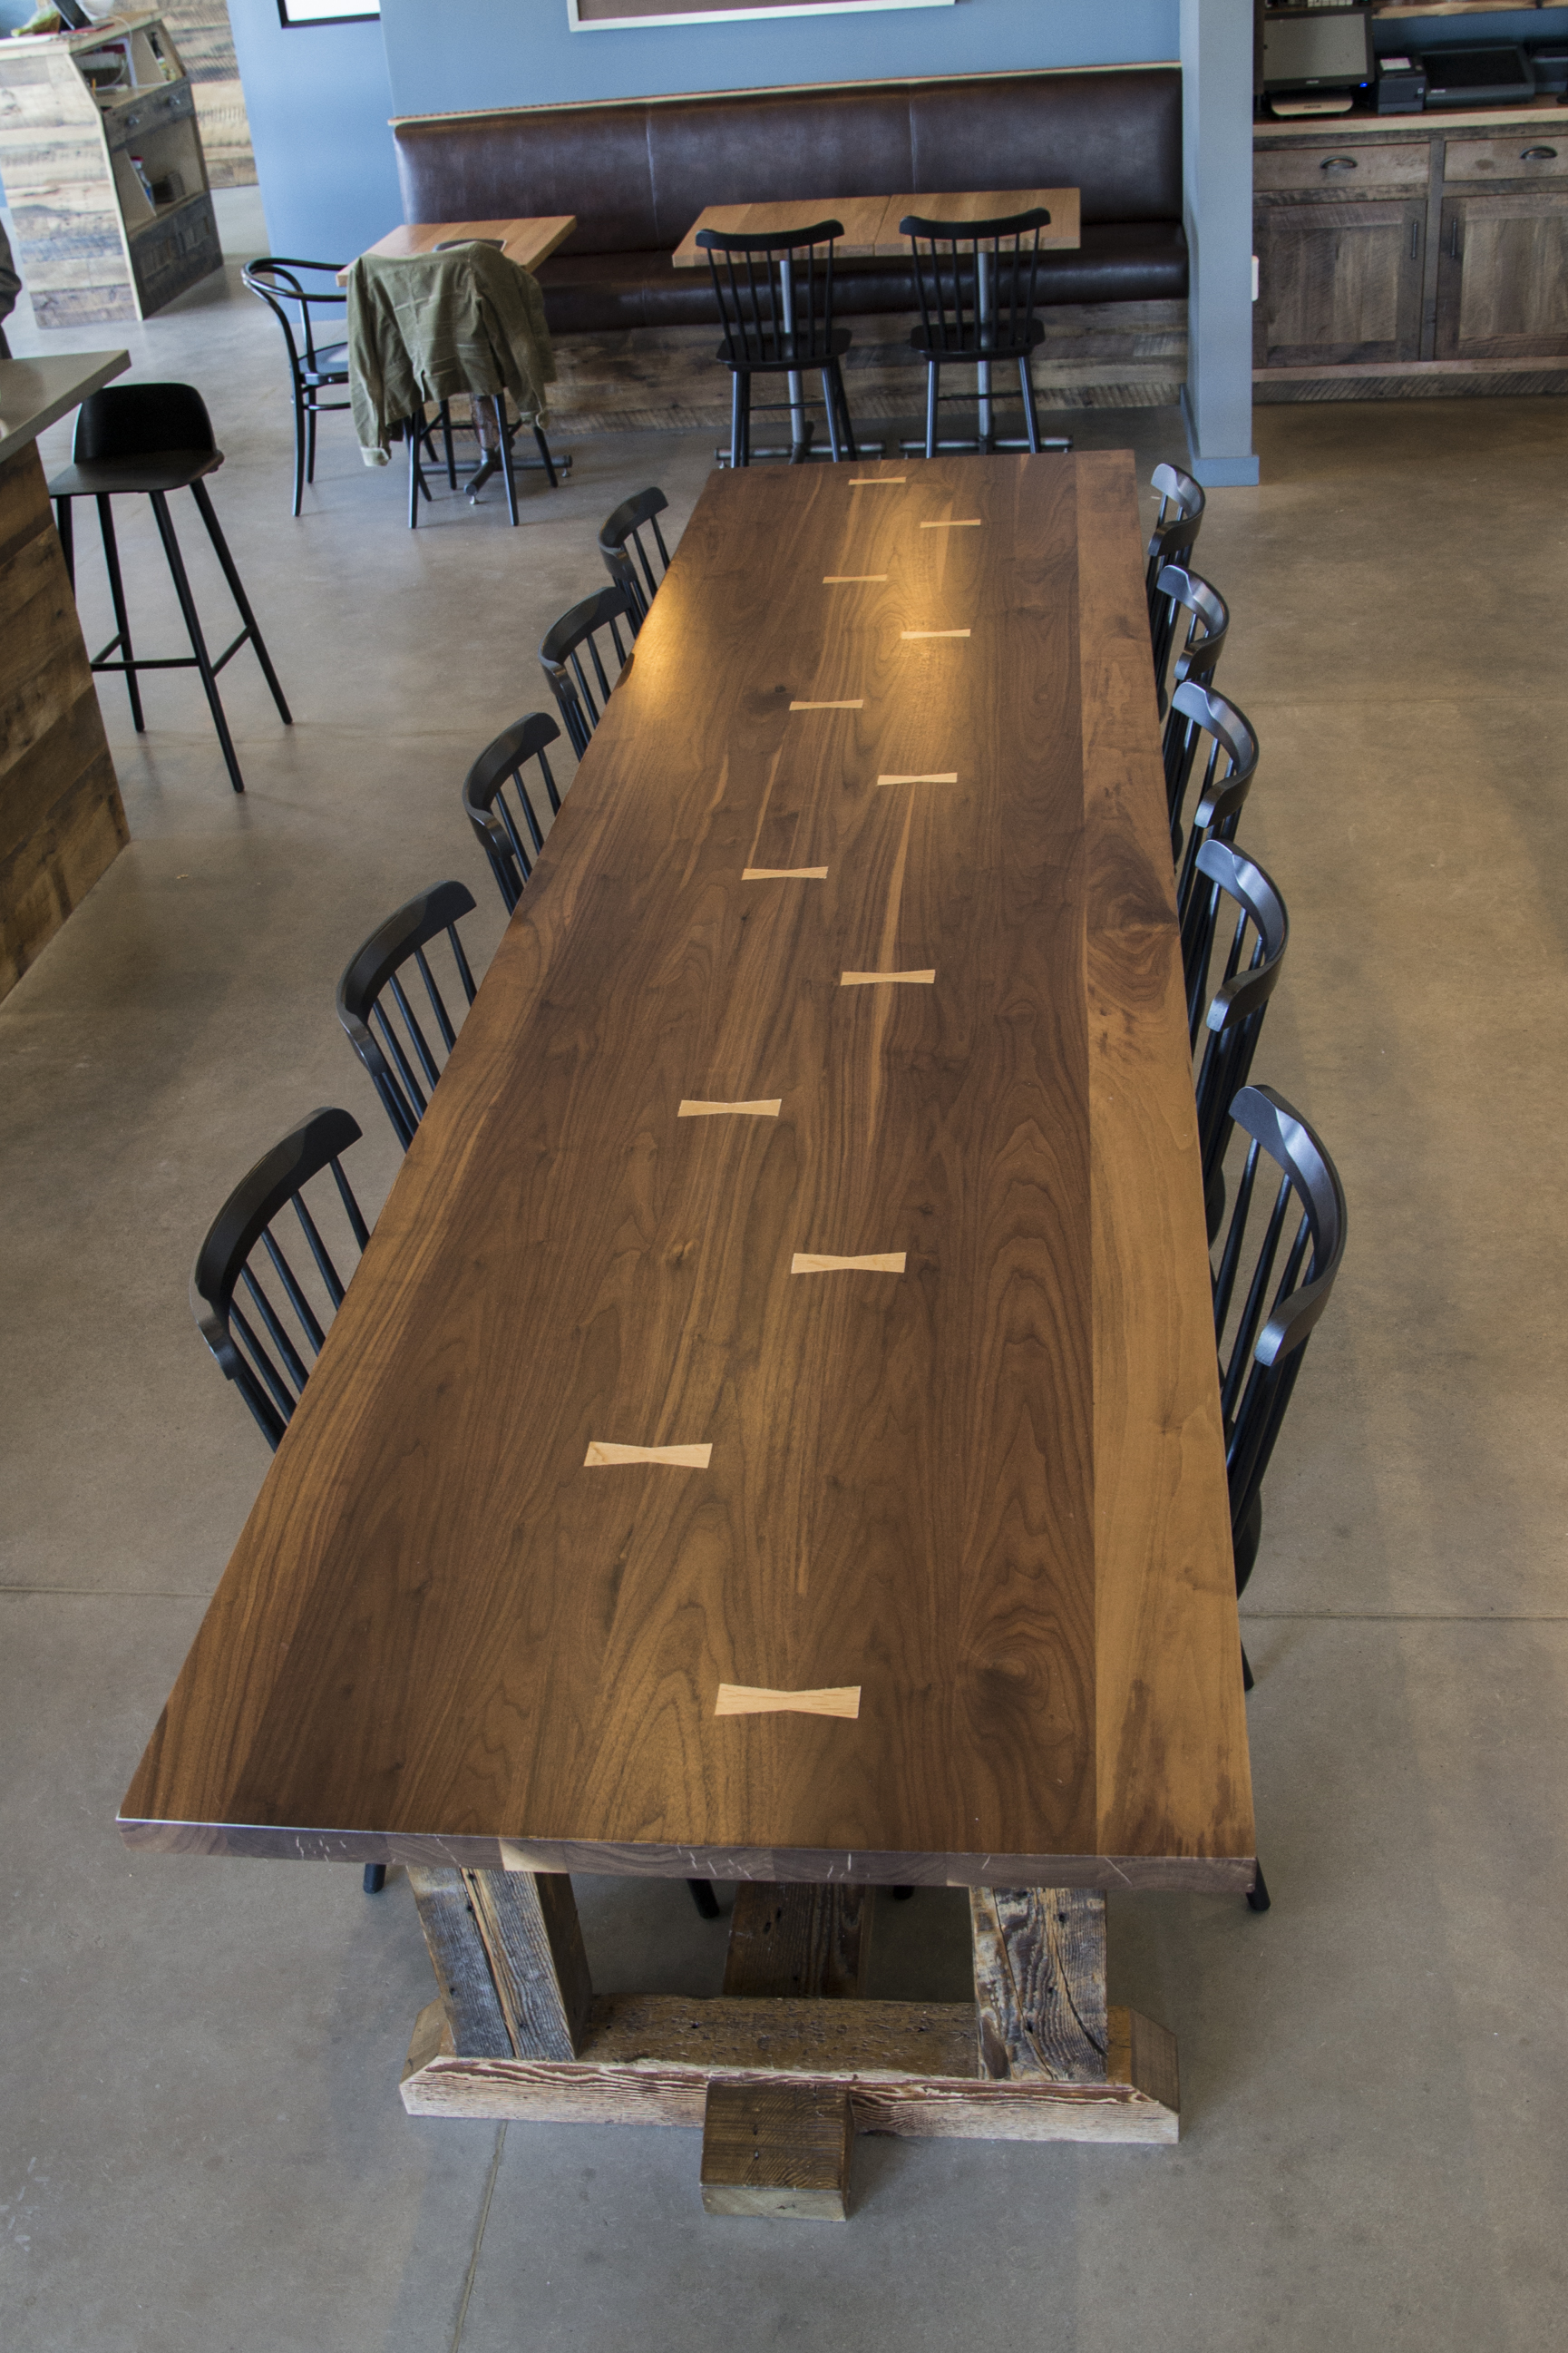 Walnut top table features butterfly joinery with a trestle base of reclaimed Hemlock